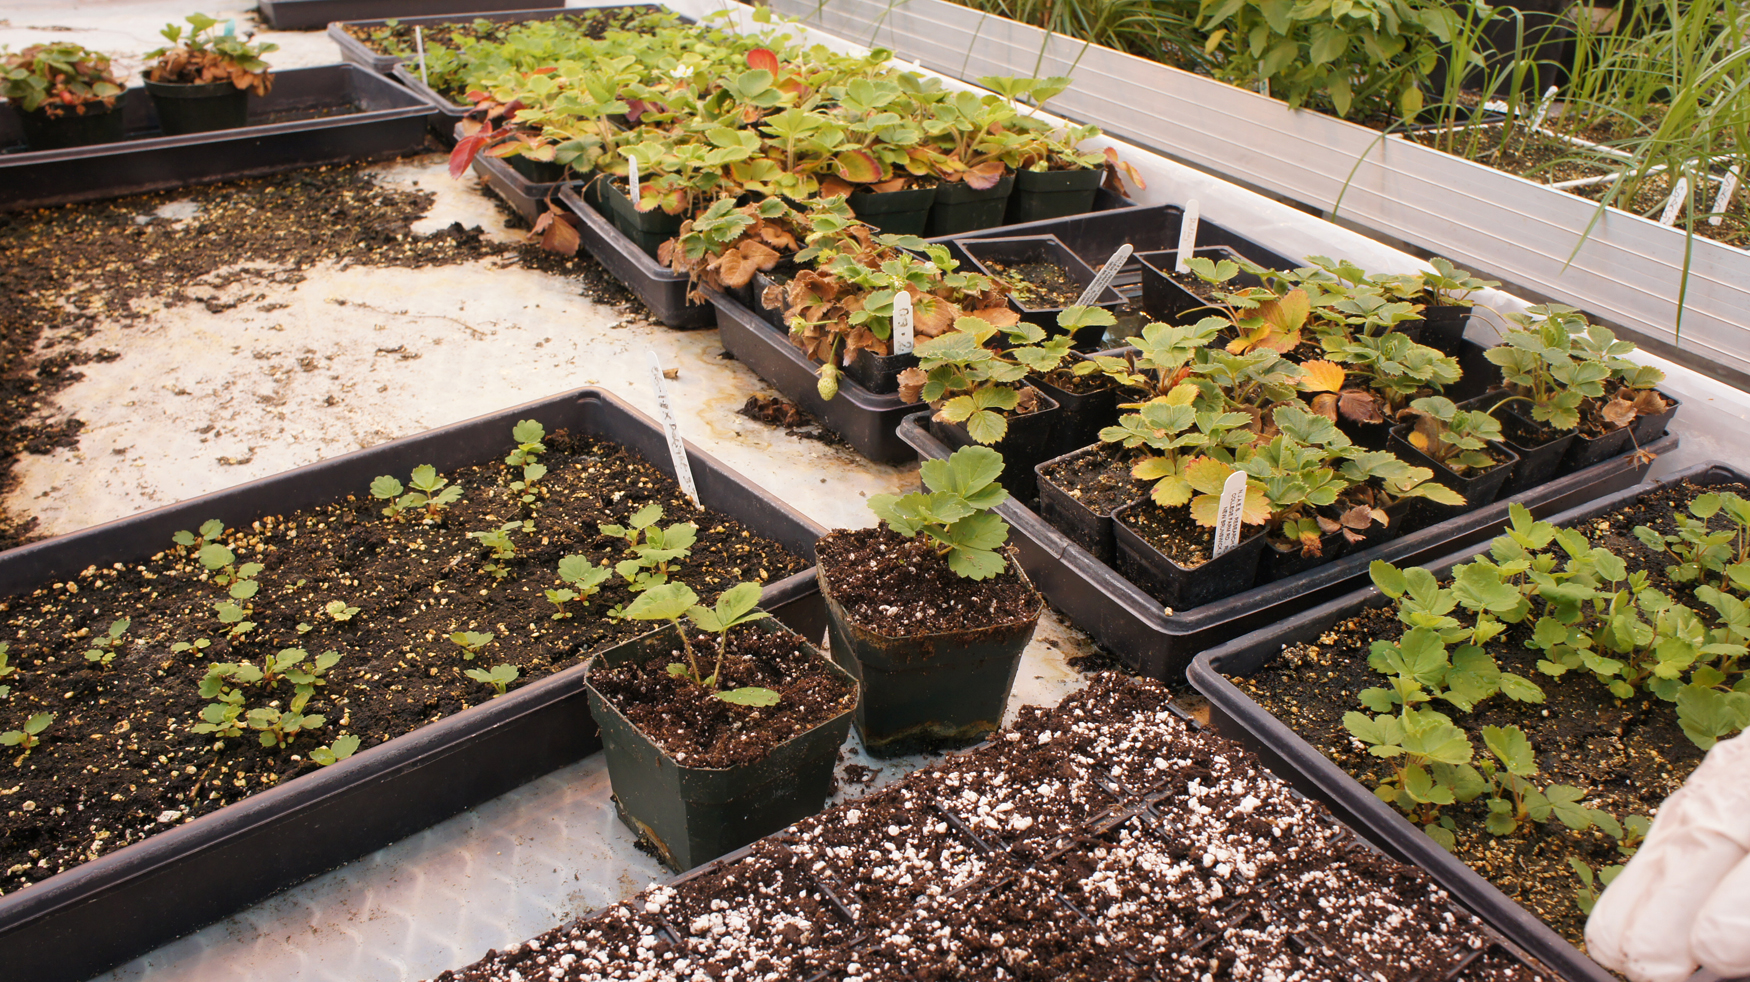 Breeding strawberries at Rutgers from start to finish